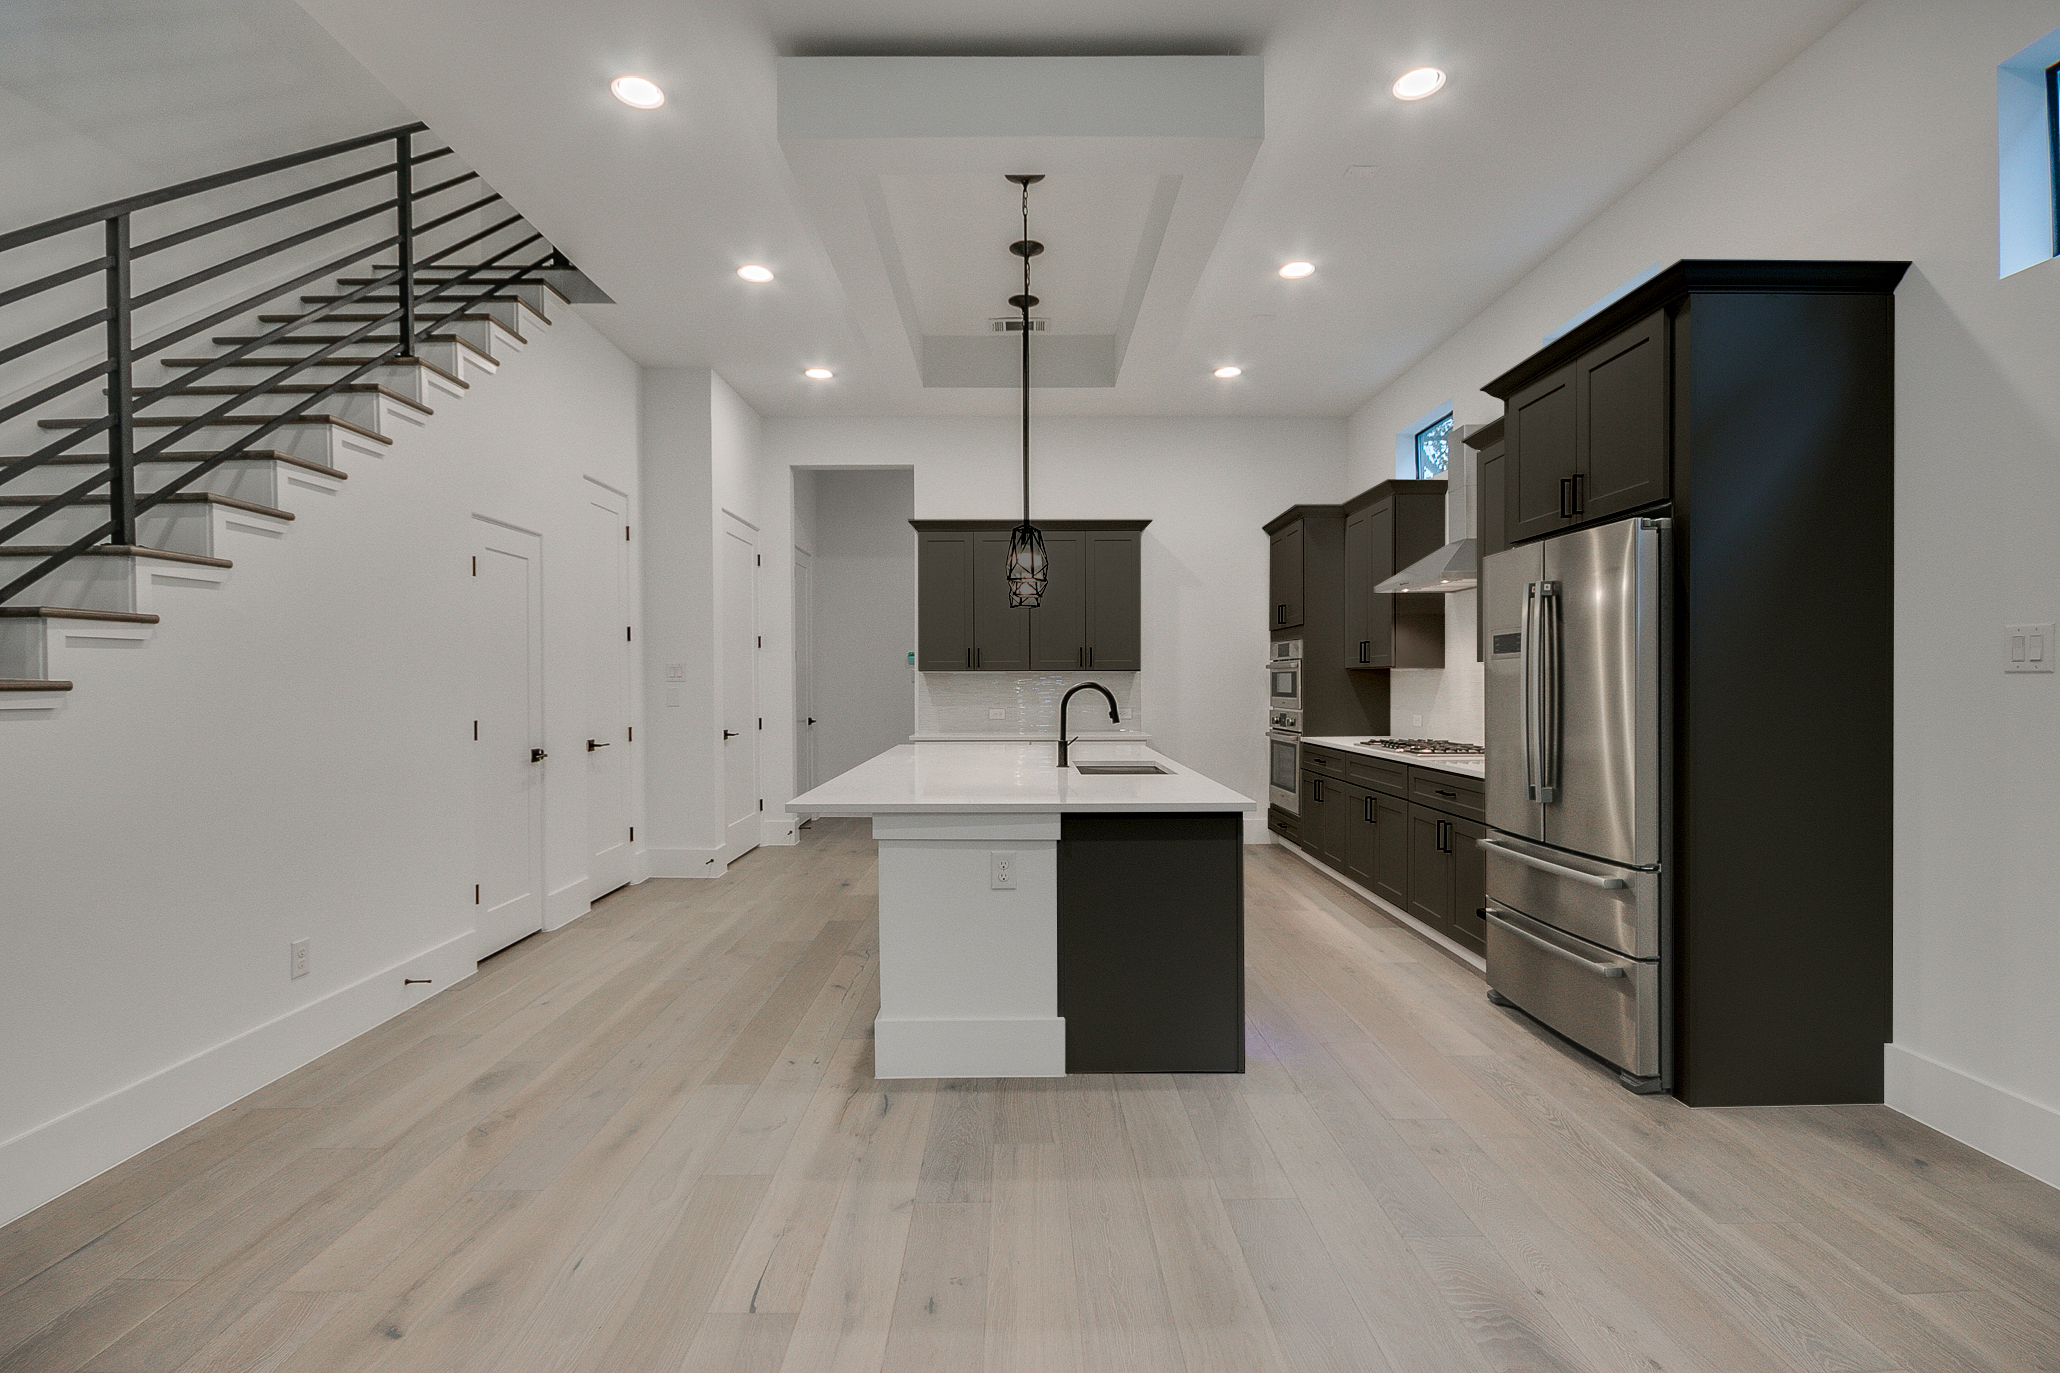 305 E 27th St3_BrownCabs.jpg